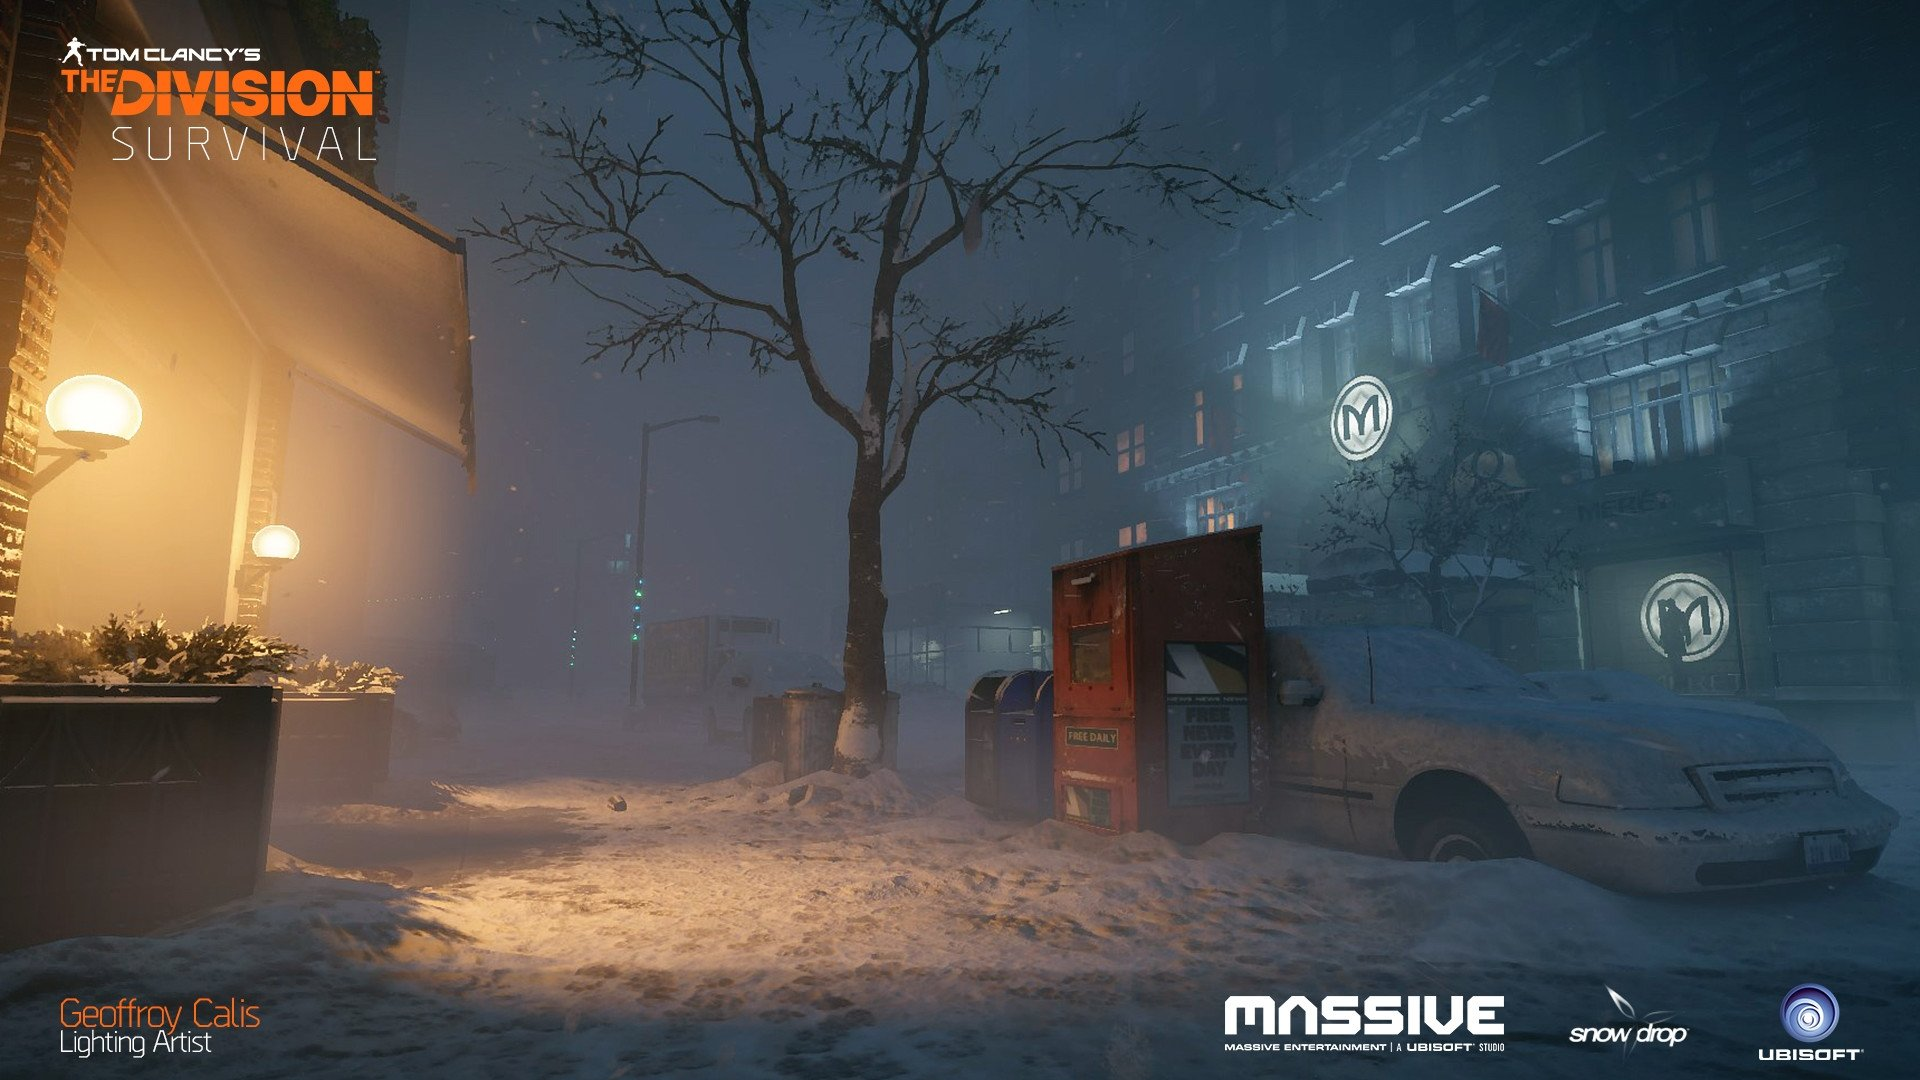 More images on my Artstation  //.artstation.com/artwork/vxAvA & The Division : Survival - Lighting Art u2014 polycount azcodes.com